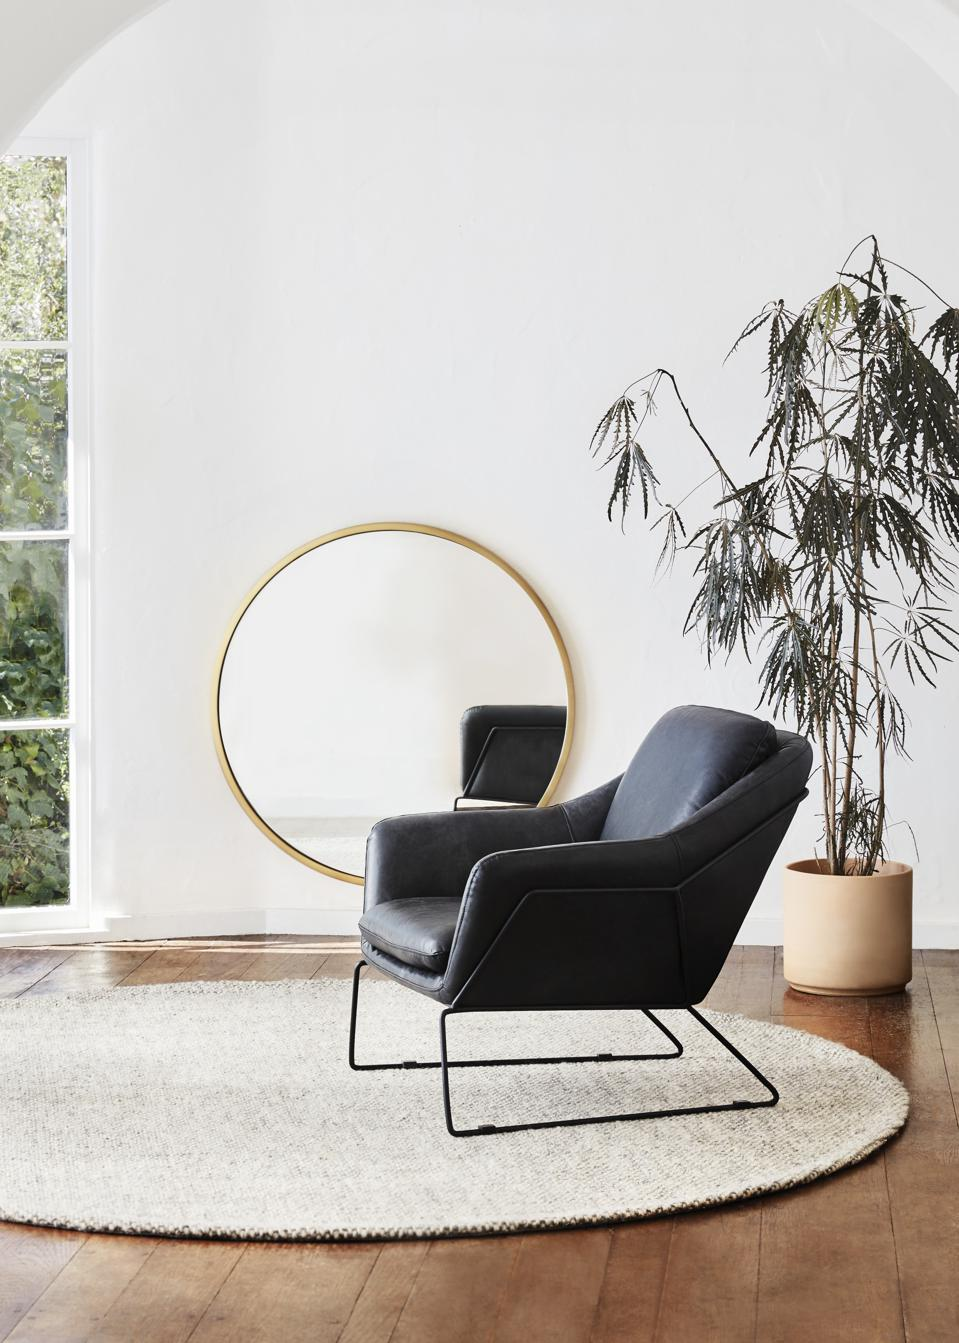 Feather offers consumers the chance to rent designs from brands such as West Elm